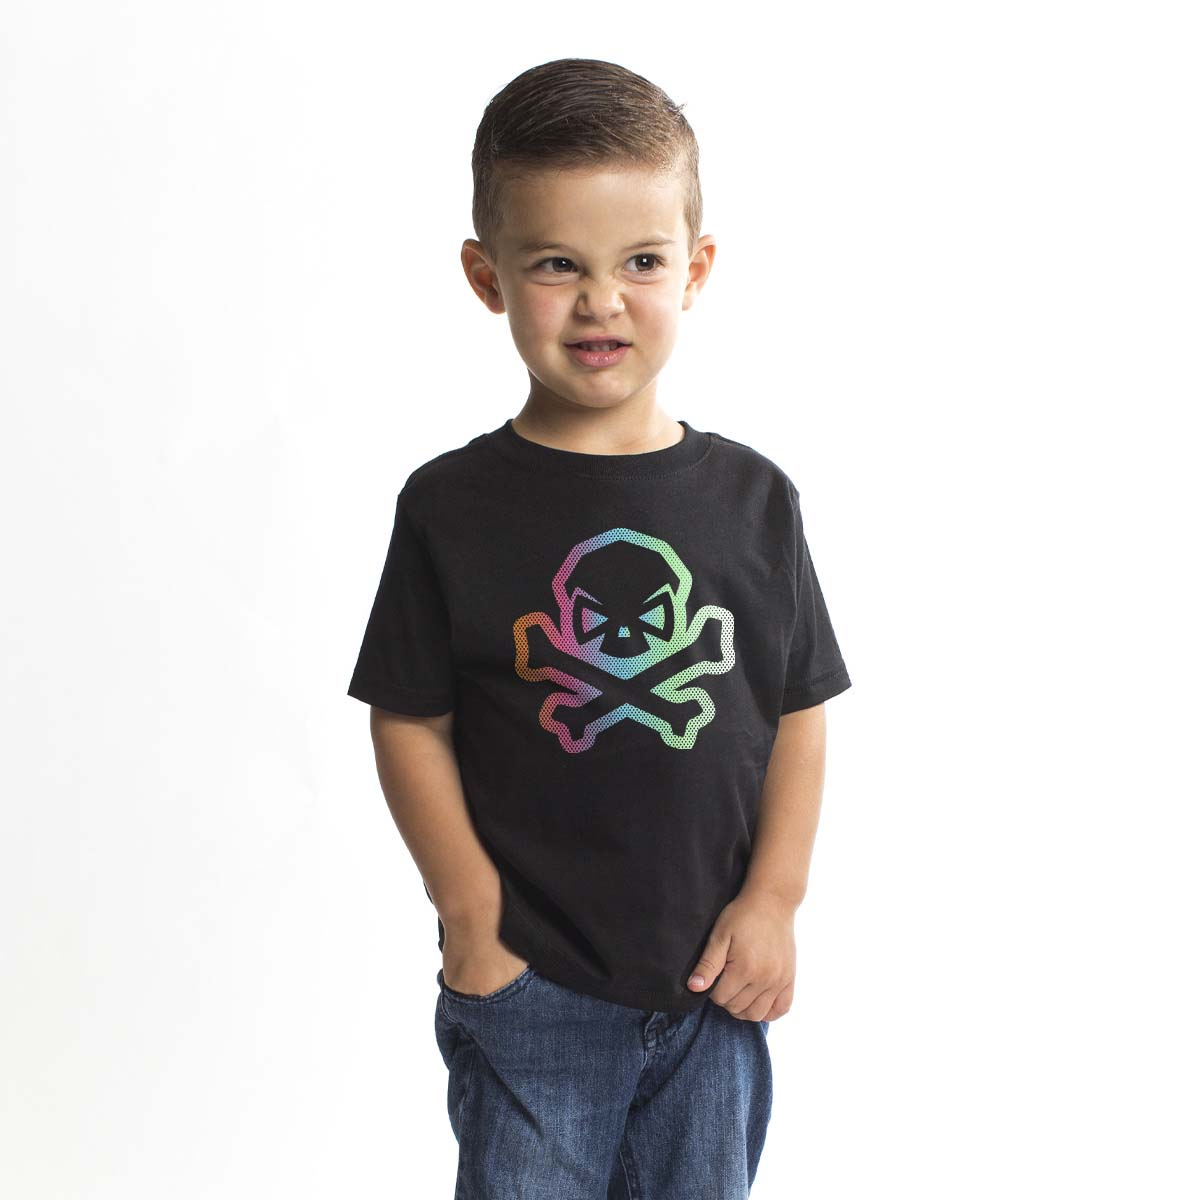 Pastel Hitter - Youth - Black - T-Shirts - Pipe Hitters Union